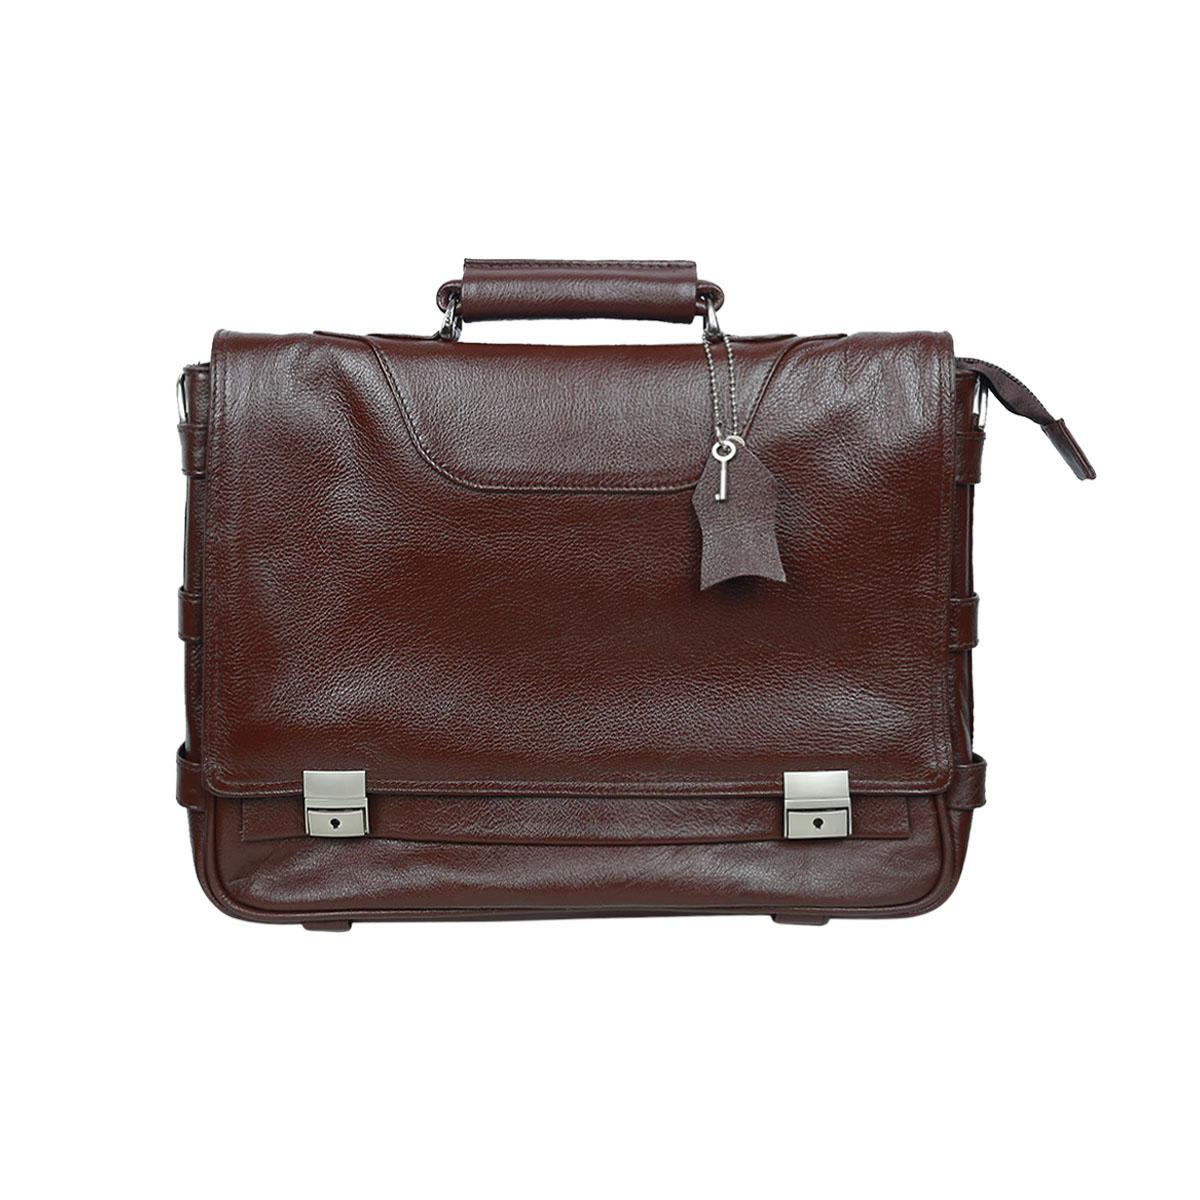 a3e5711e9 Buy Ismail Leather Men Business Bags at Best Prices Online in ...